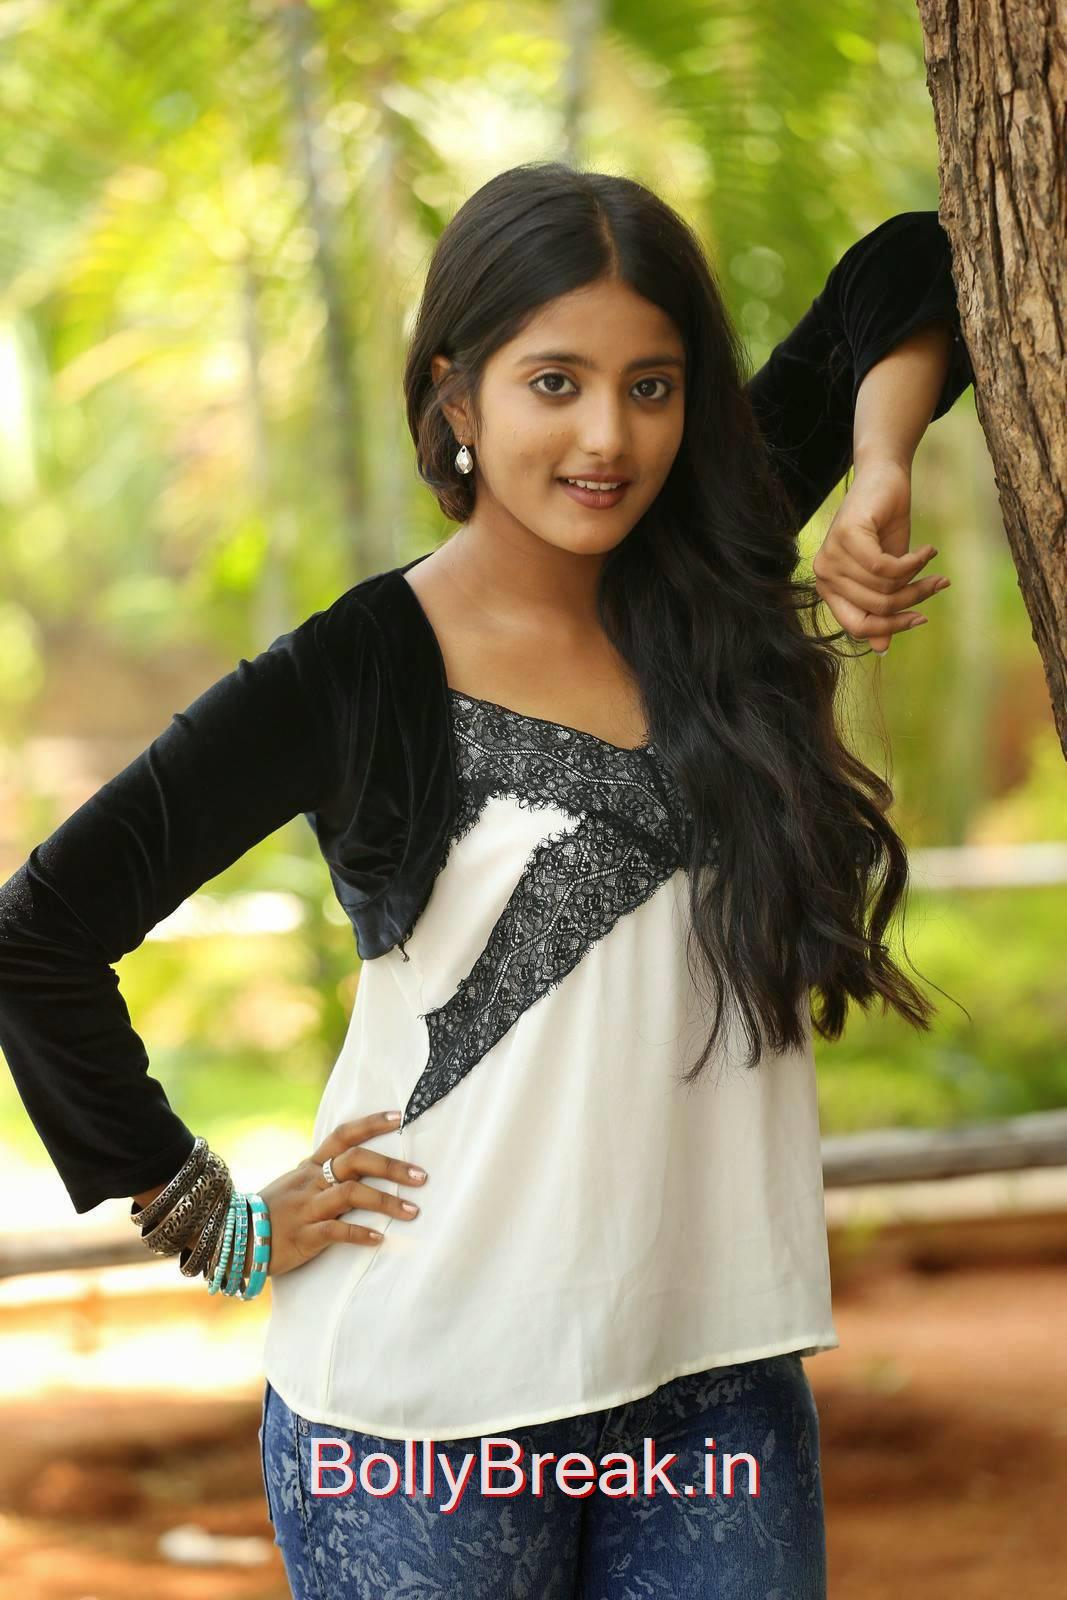 Telugu Actress Ulka Gupta, Cute, Sweet, Innocent Indian Actress Ulka Gupta hot HD Photo Gallery Pics